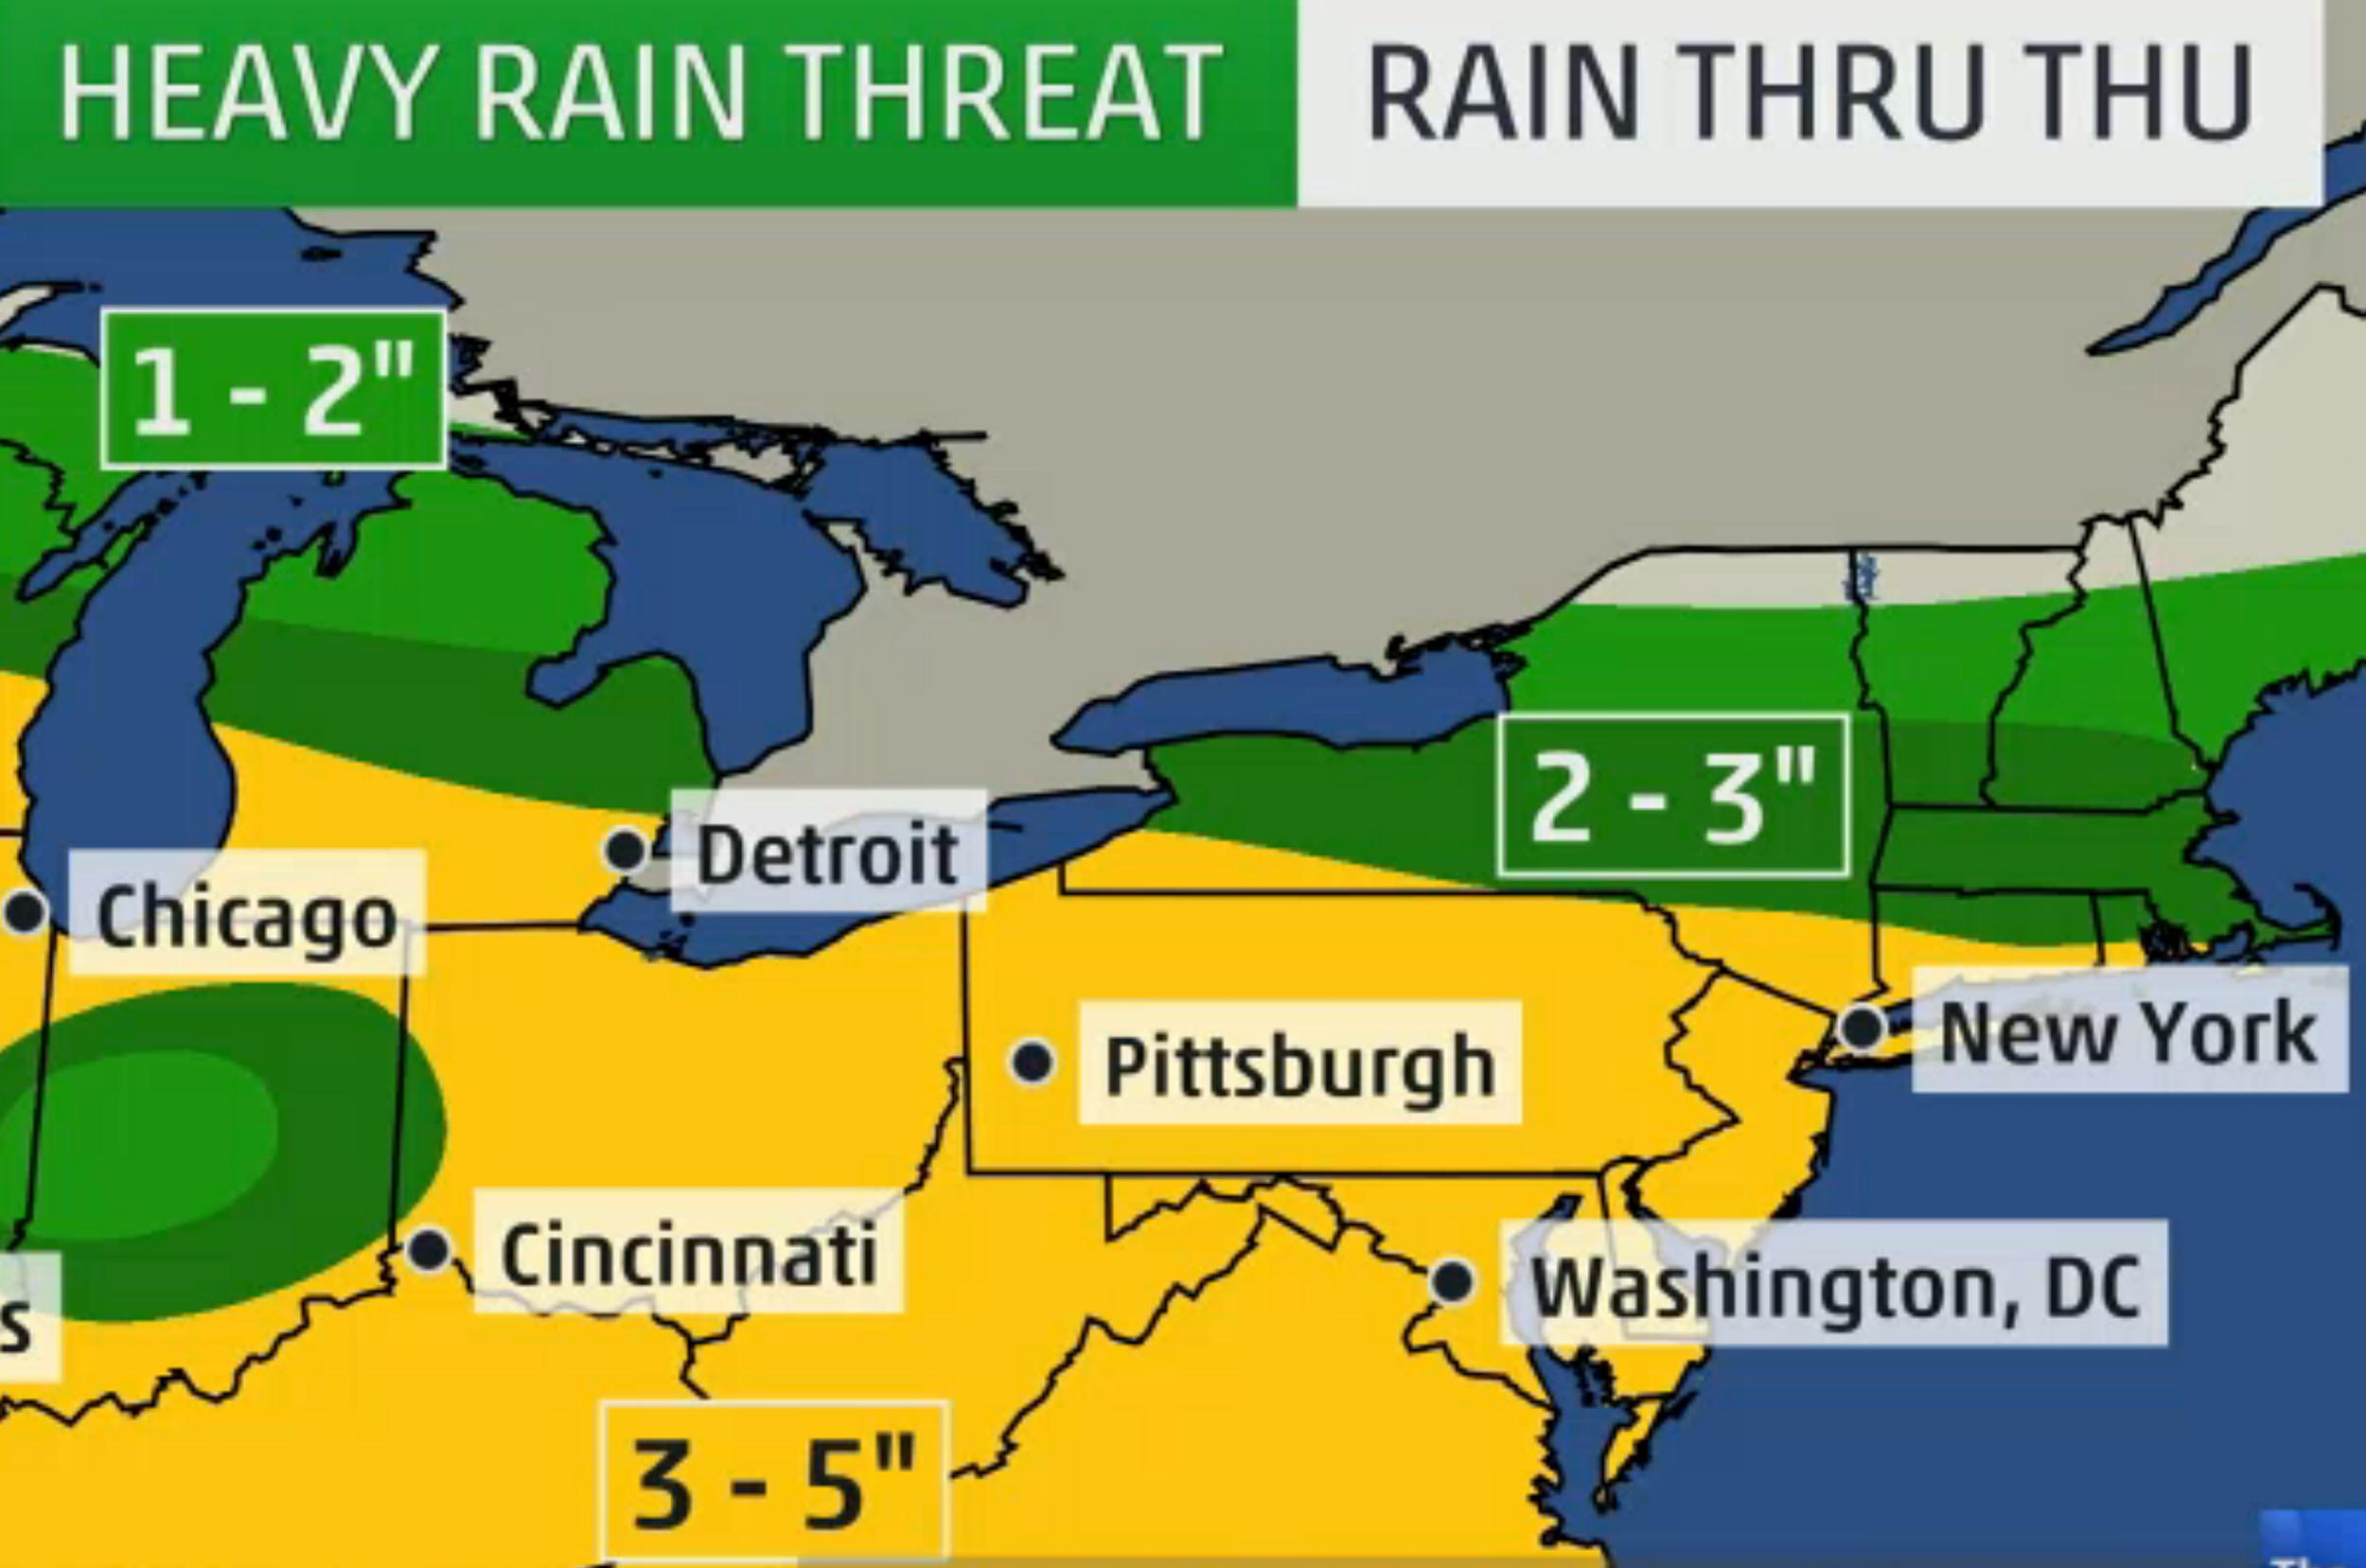 Weather Channel Forecast : Severe storms rain to super soak millions across south